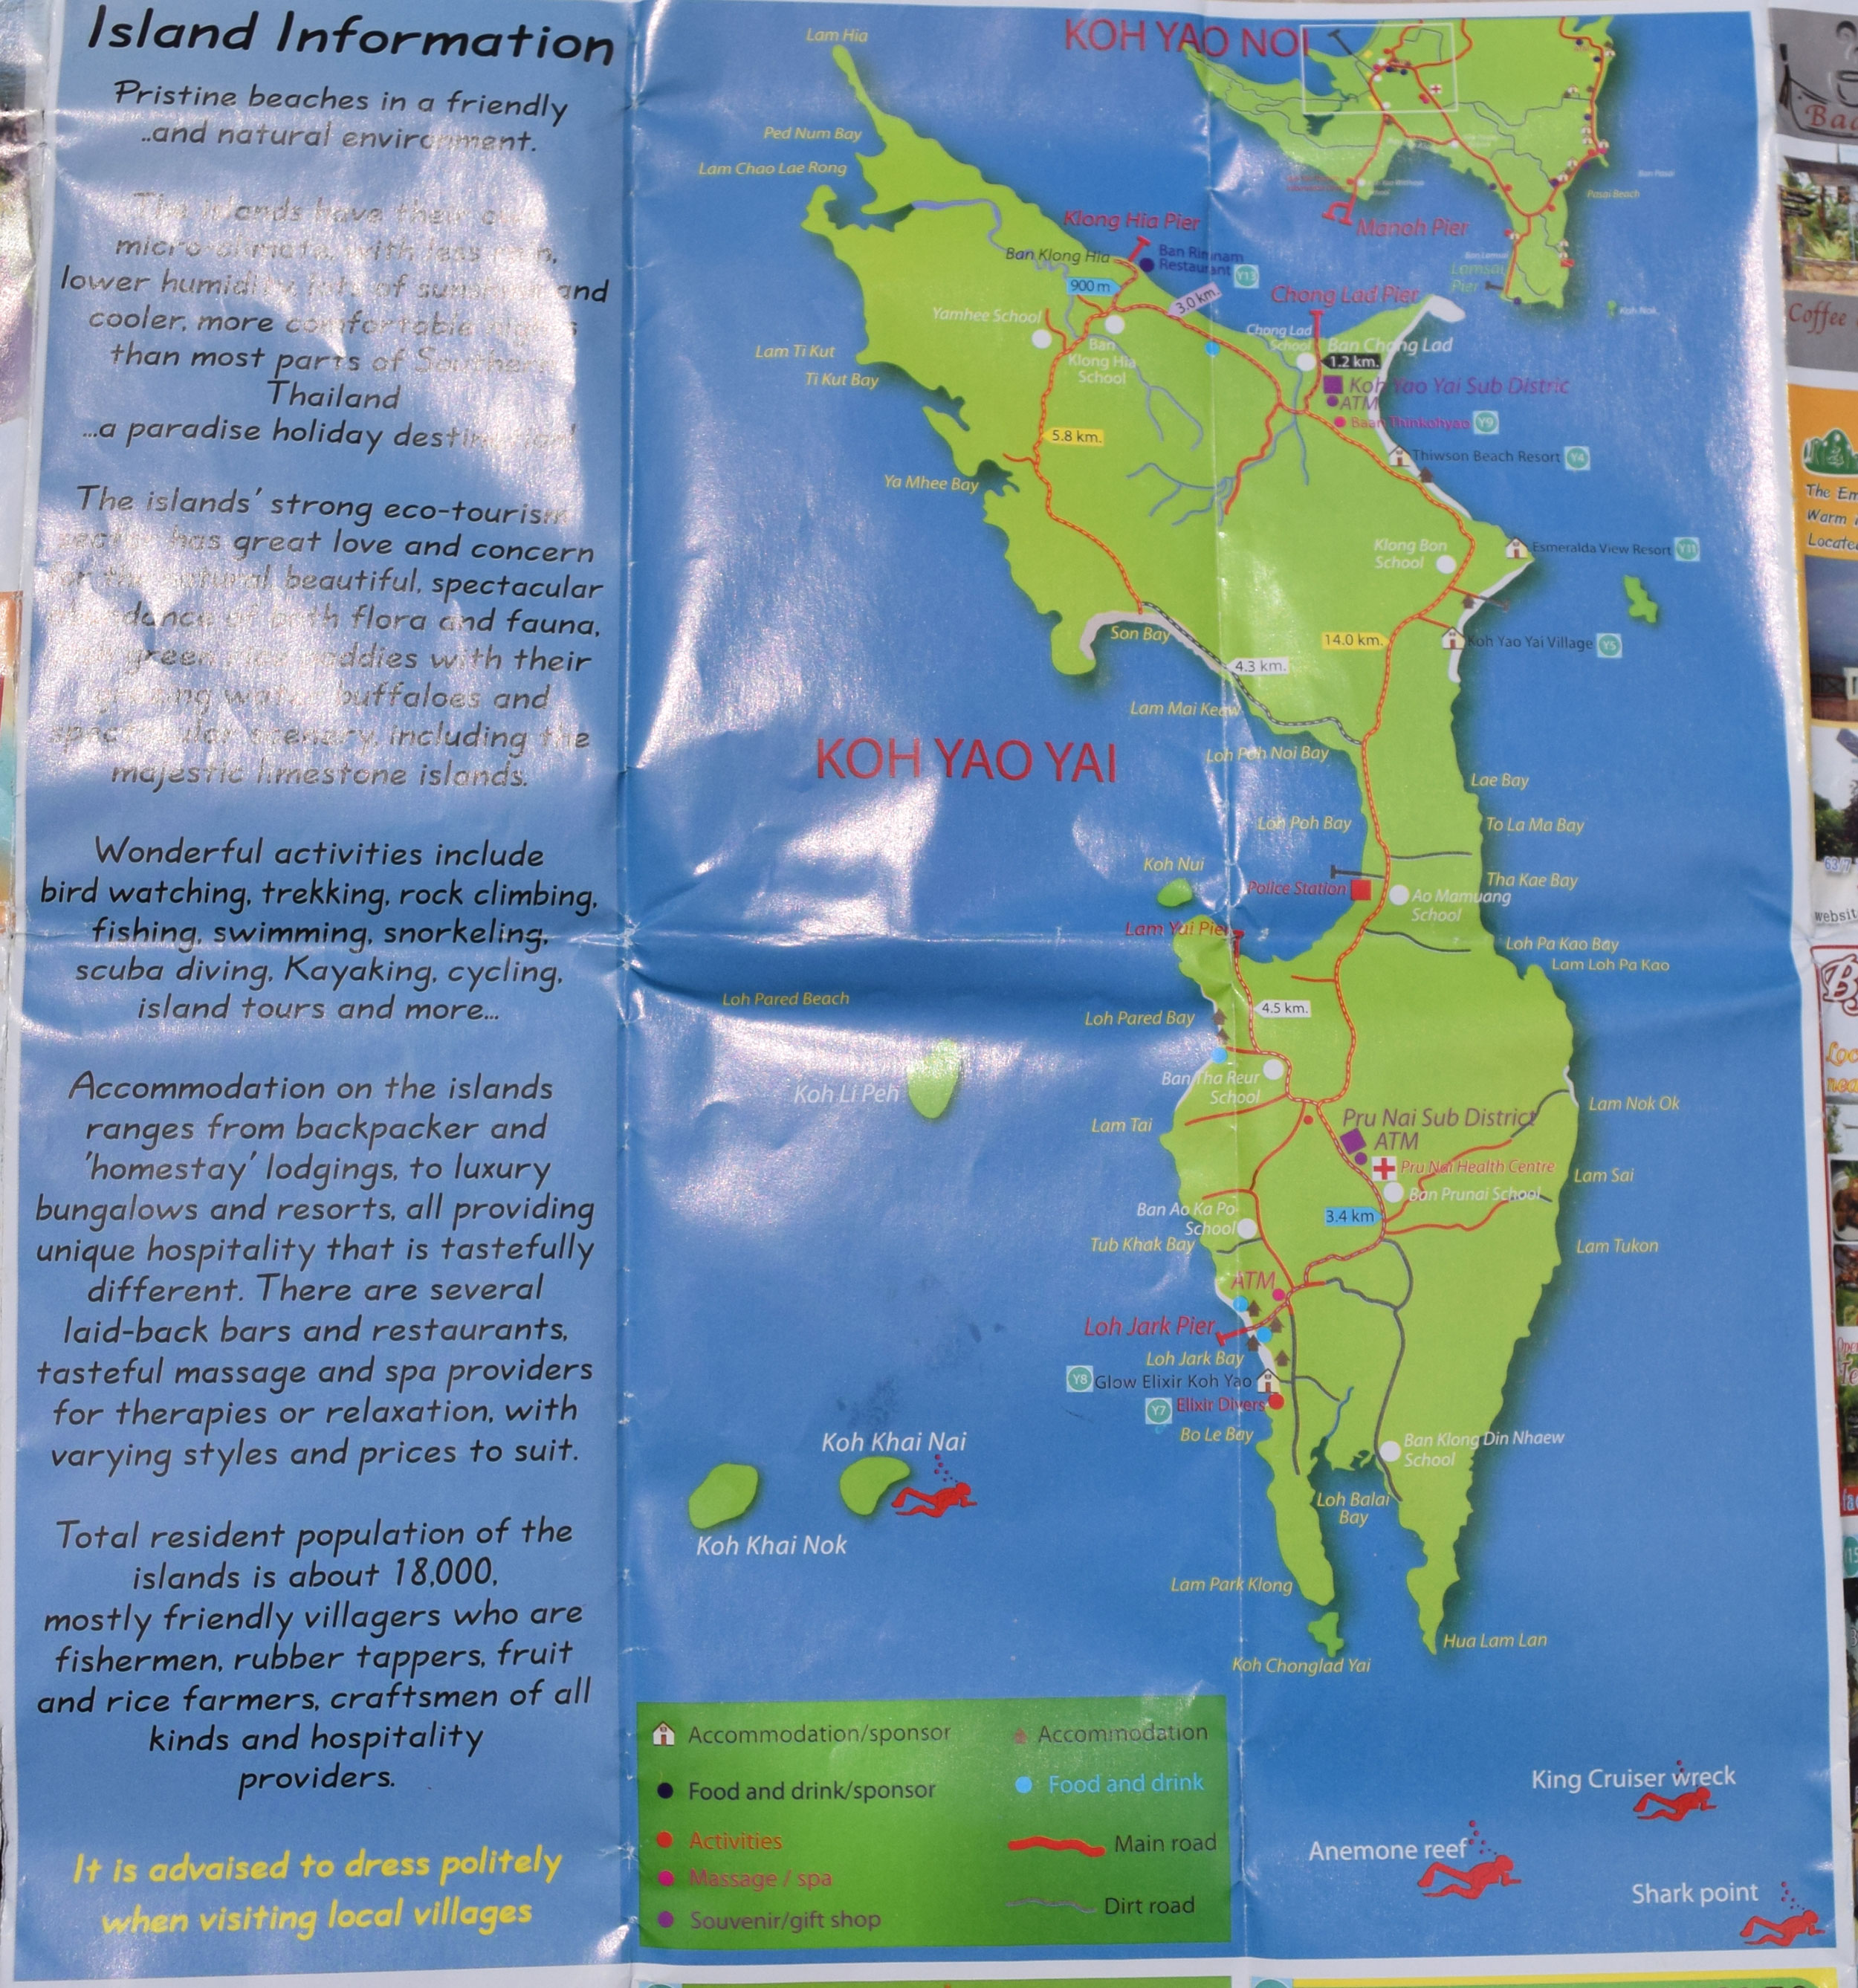 Things To Do On The Magical Island Of Koh Yao Yai The Last Of - Last of us travel map